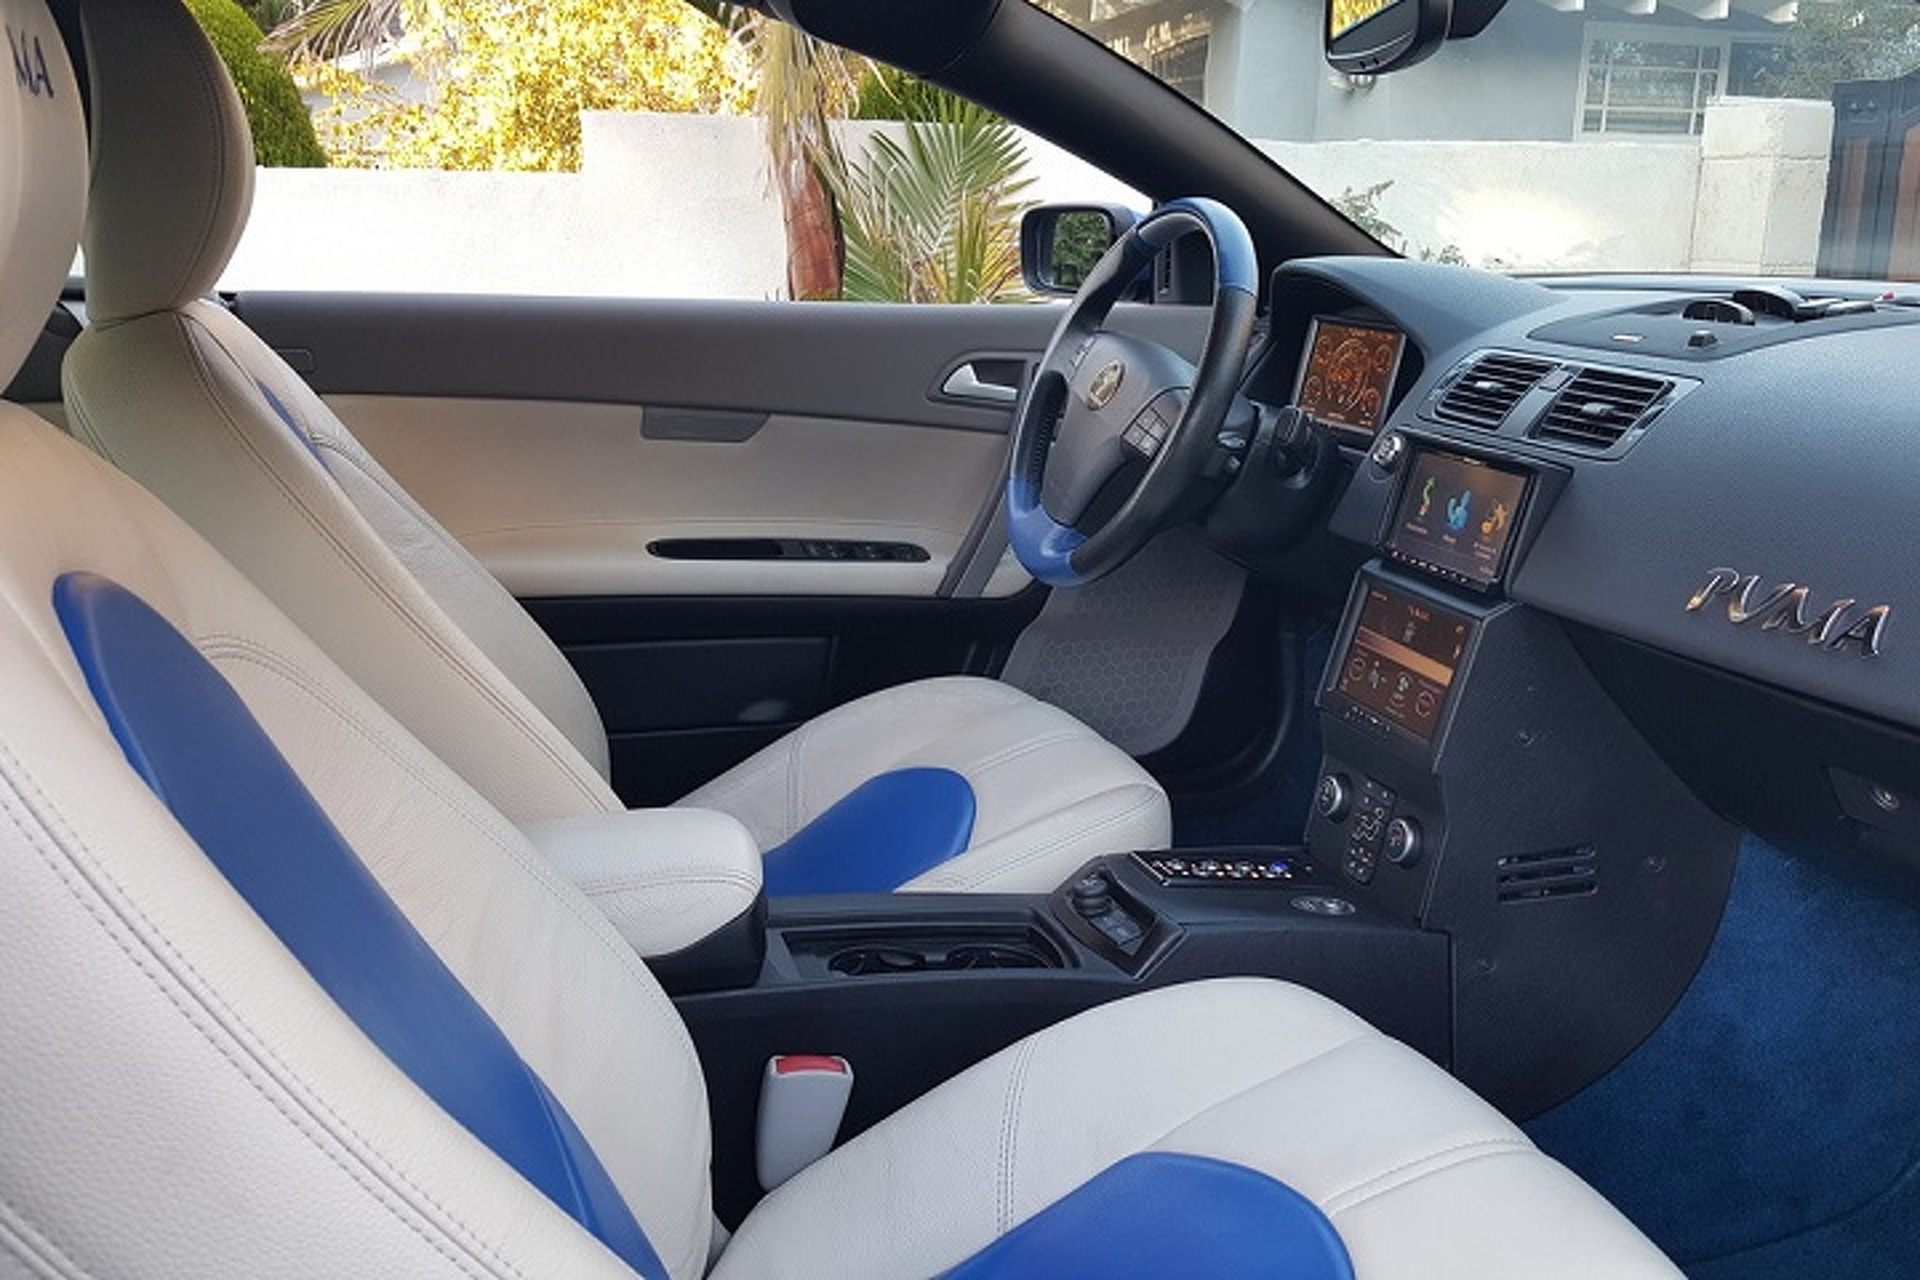 Own This Youabian Puma for a Cool $895K